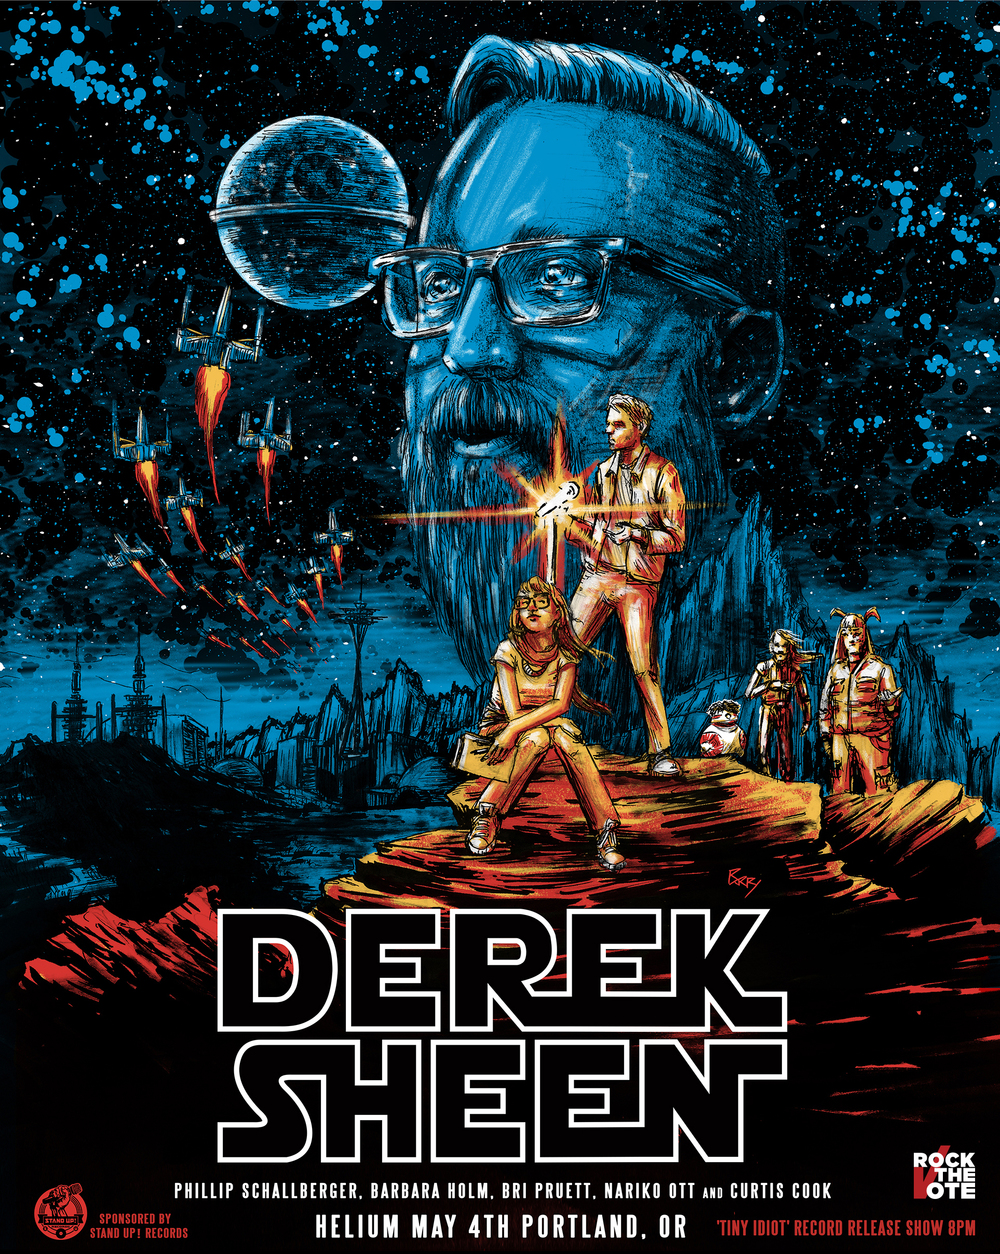 derek_sheen_wars rtv.jpg